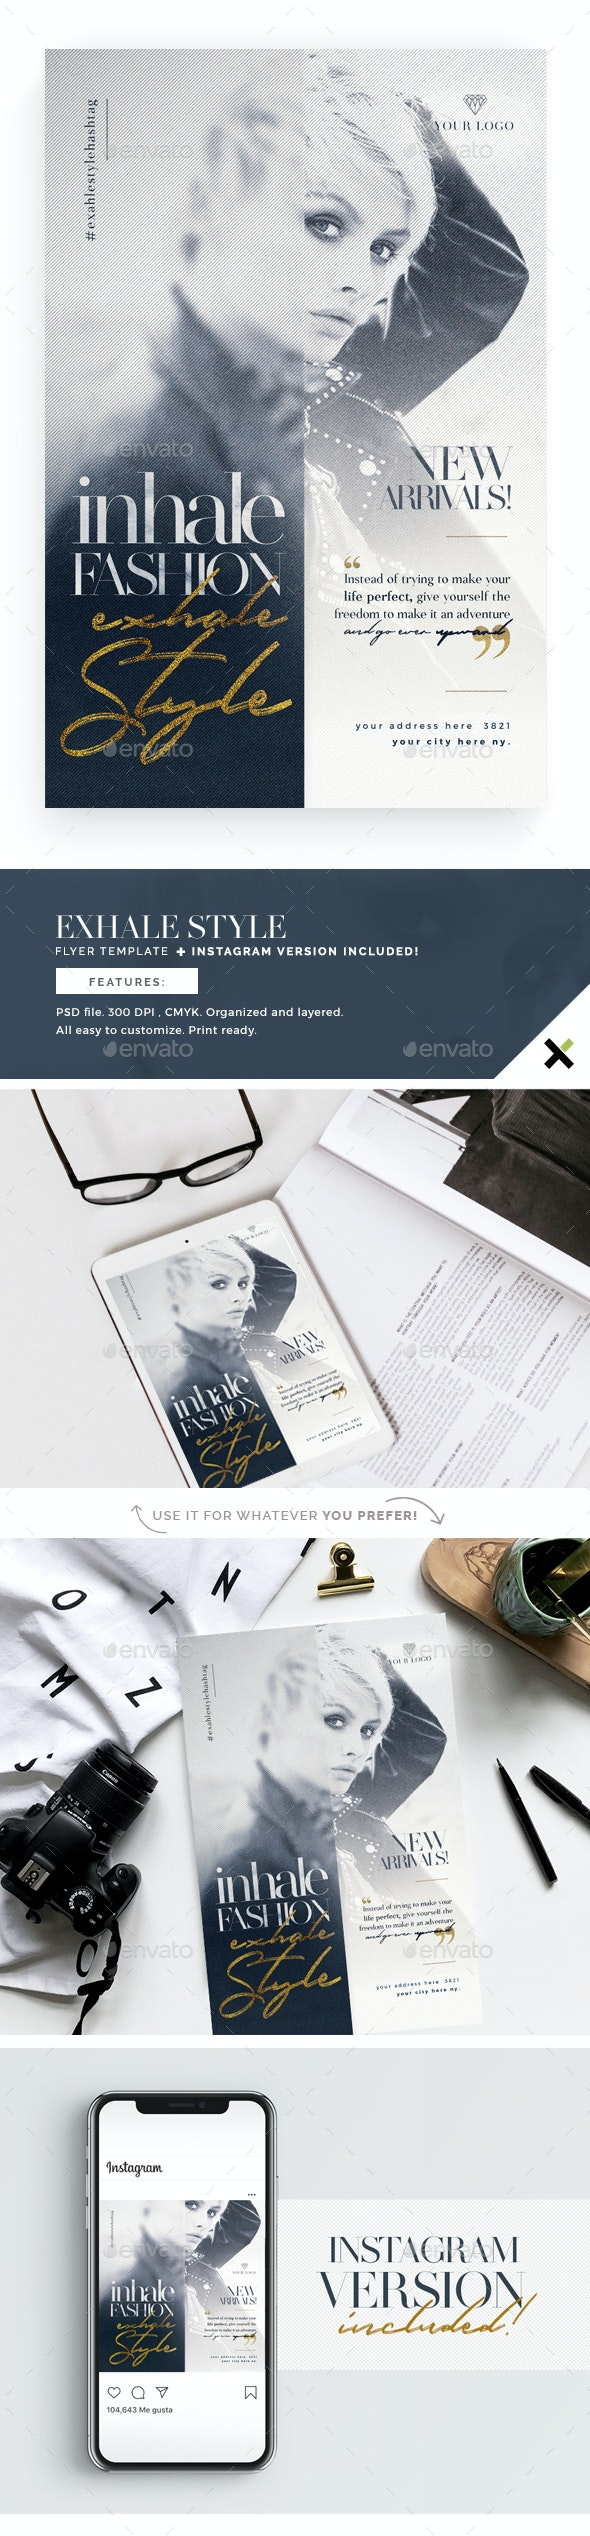 Exhale Style Flyer Template - Flyers Print Templates